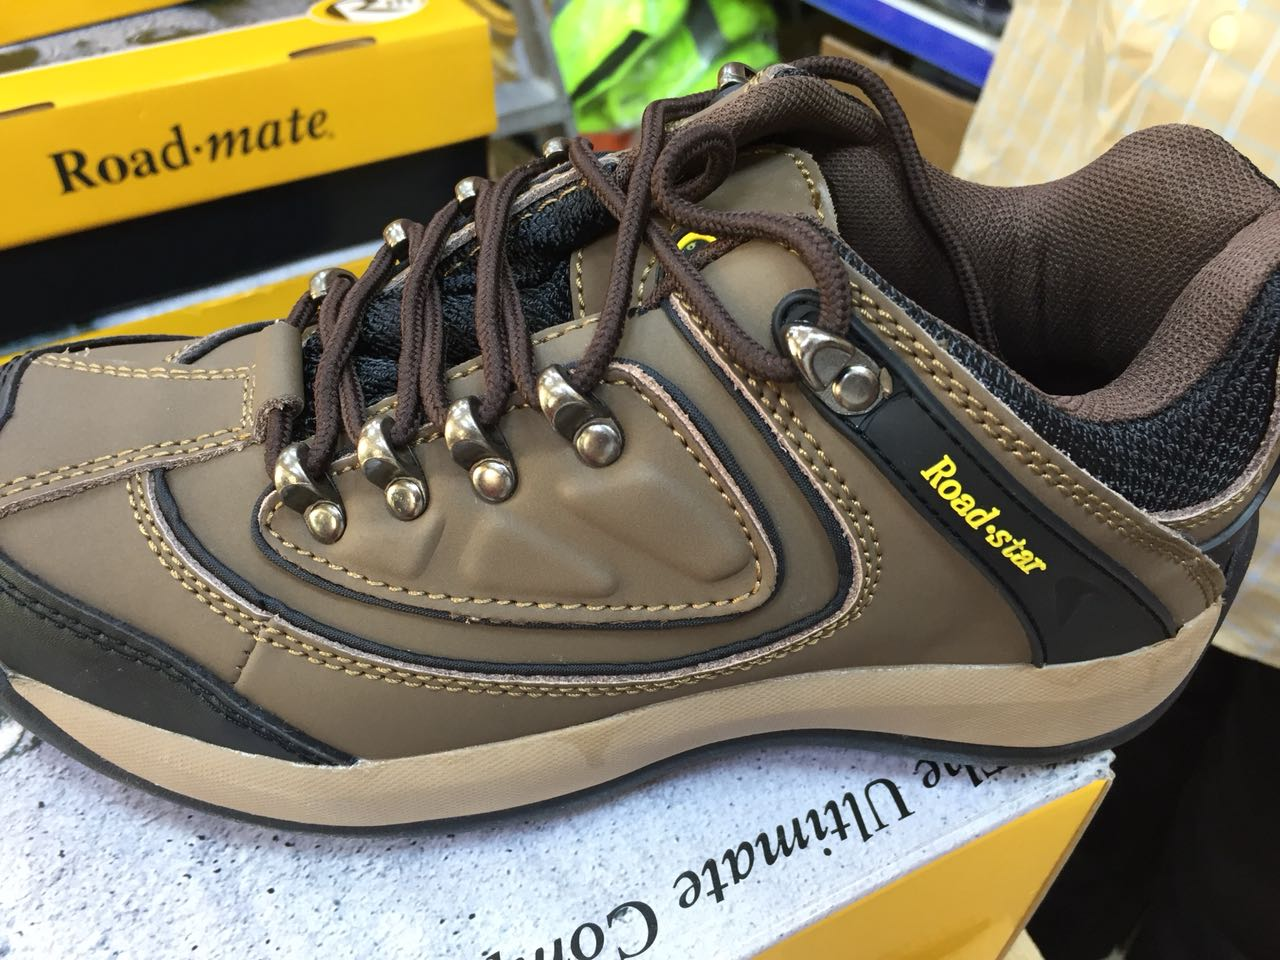 Roadmate Safety Shoes Request For Quotation Details - Abraa